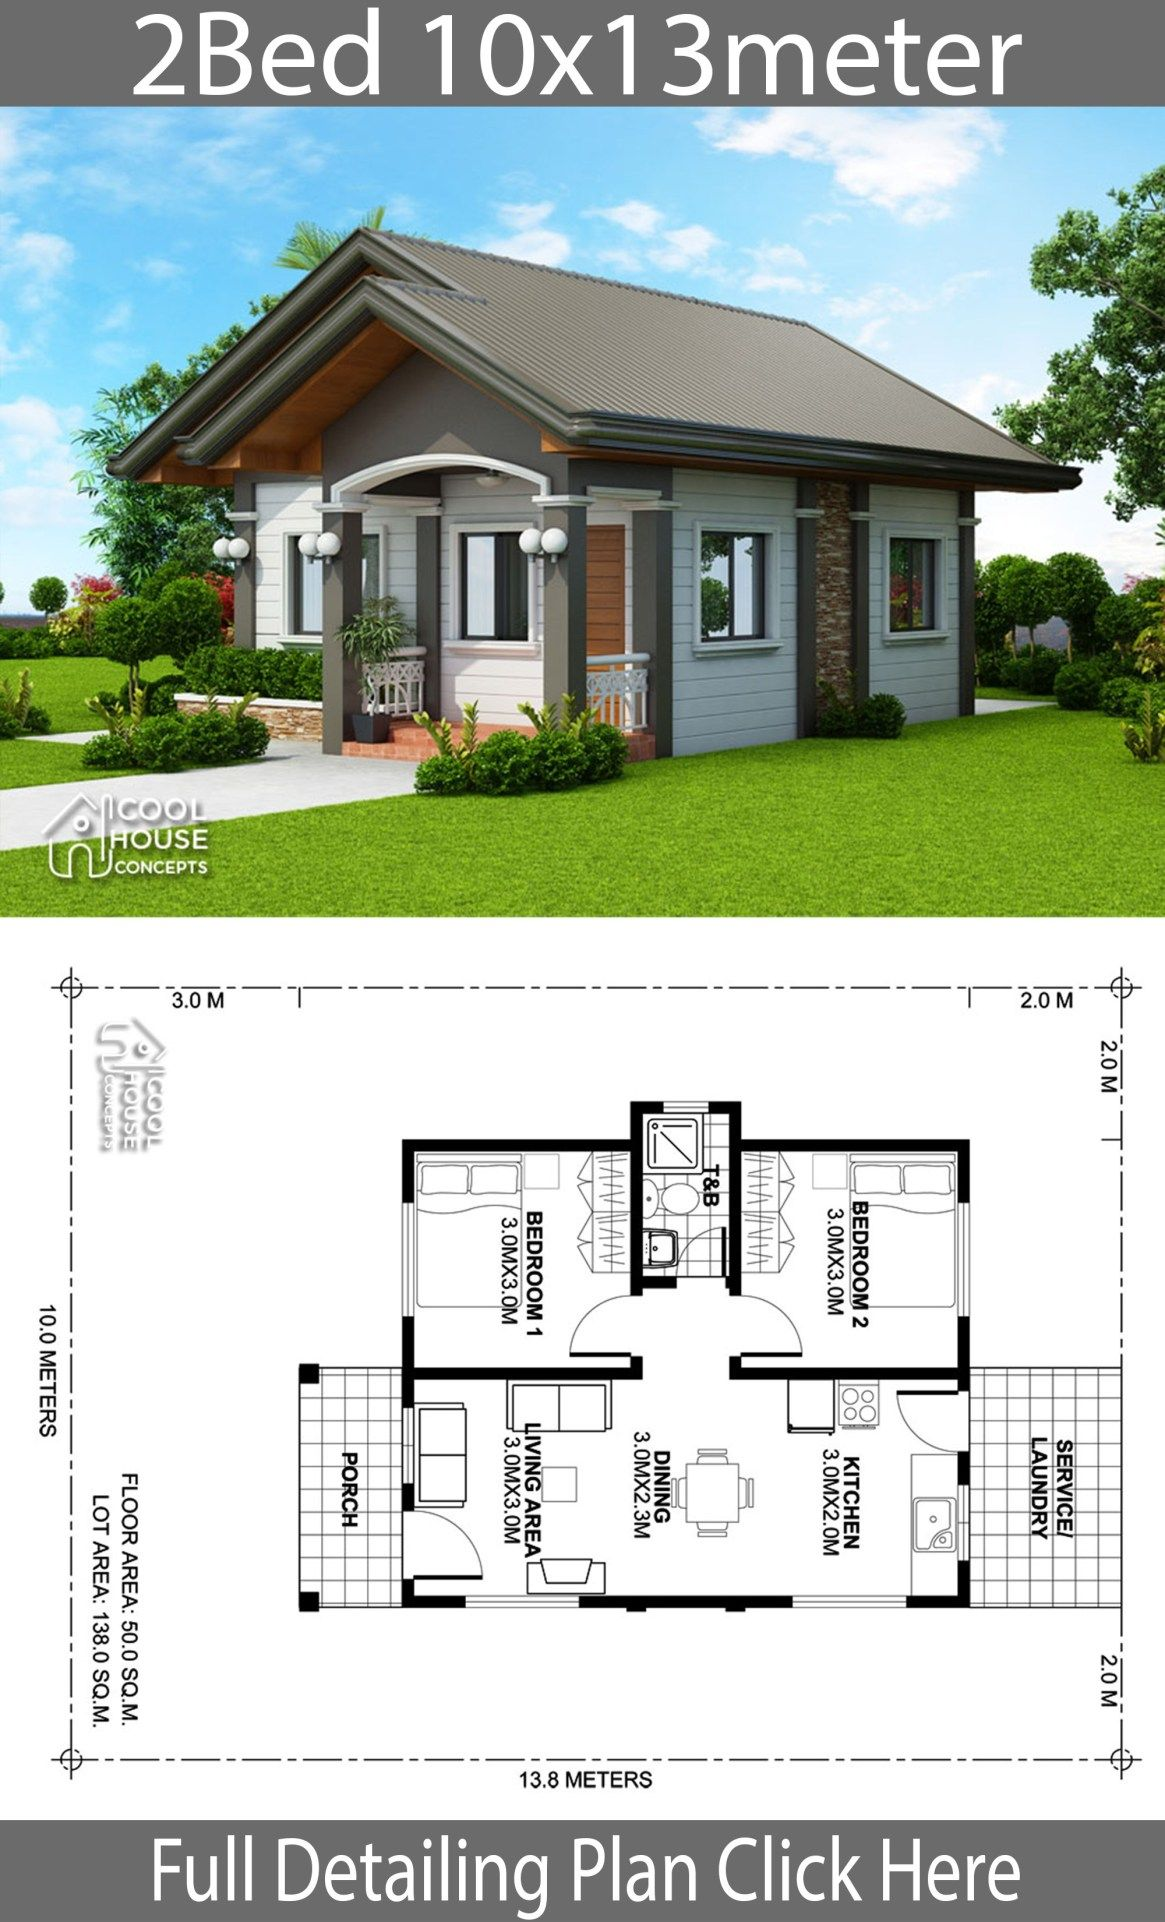 Home Design Plan 10x13m With 2 Bedrooms In 2020 My House Plans